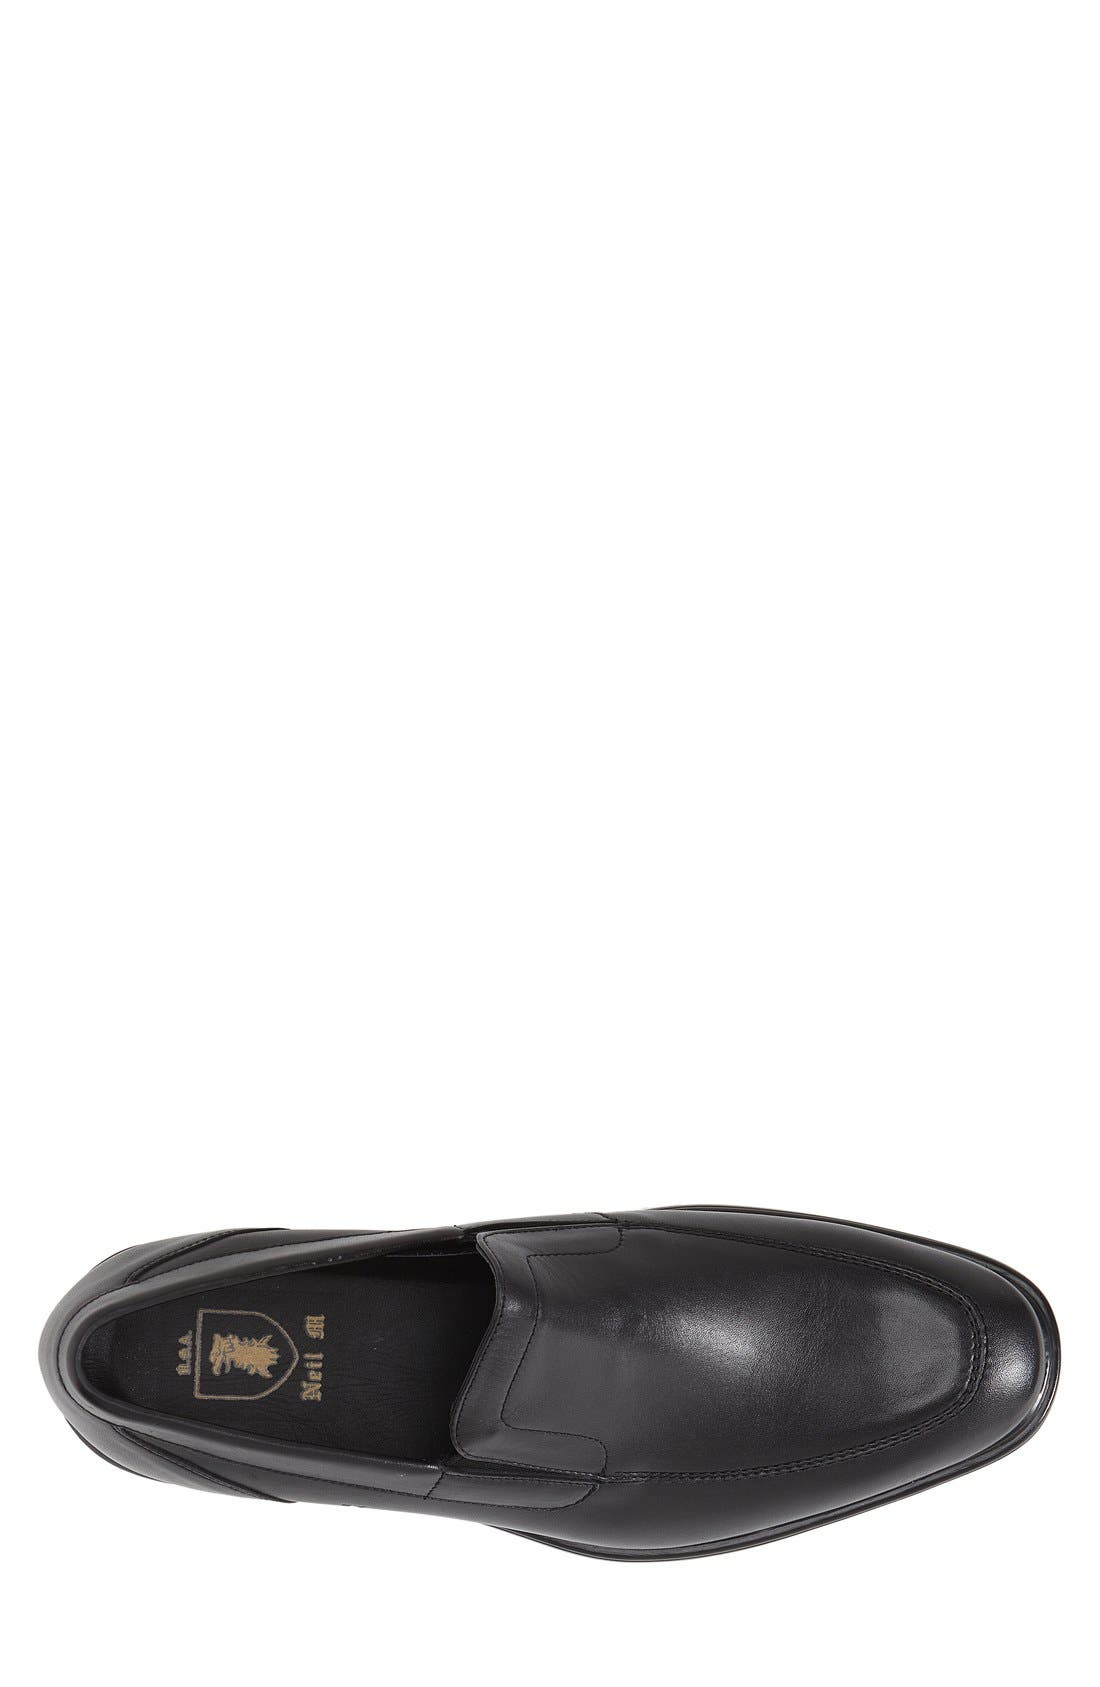 'Chancellor' Venetian Loafer,                             Alternate thumbnail 3, color,                             BLACK